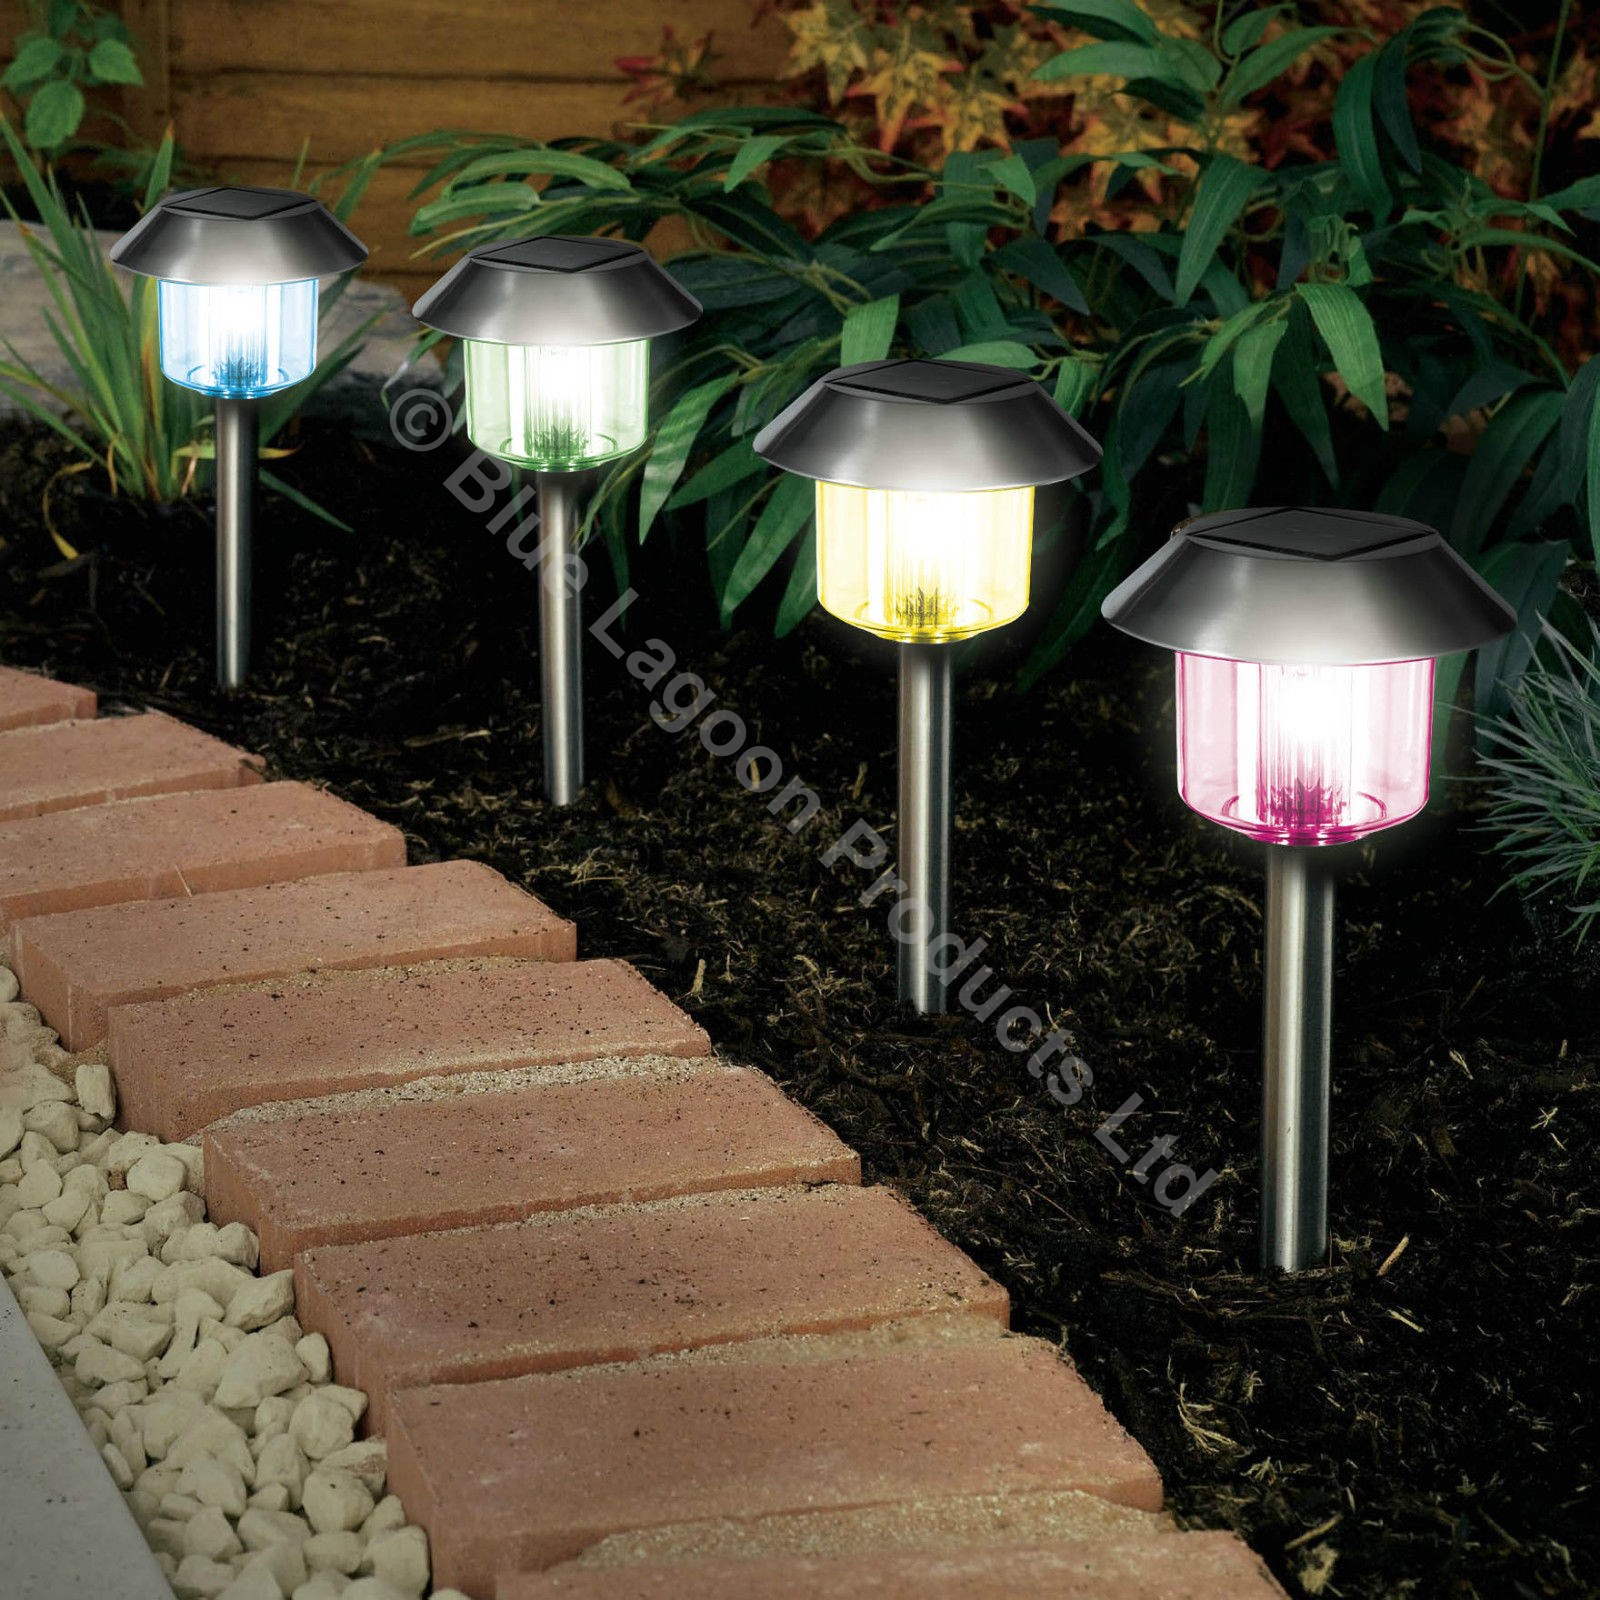 4 Foot Outdoor Solar Powered Lamp Post With: 4 X Colour Changing Solar Power Light LED Post Outdoor